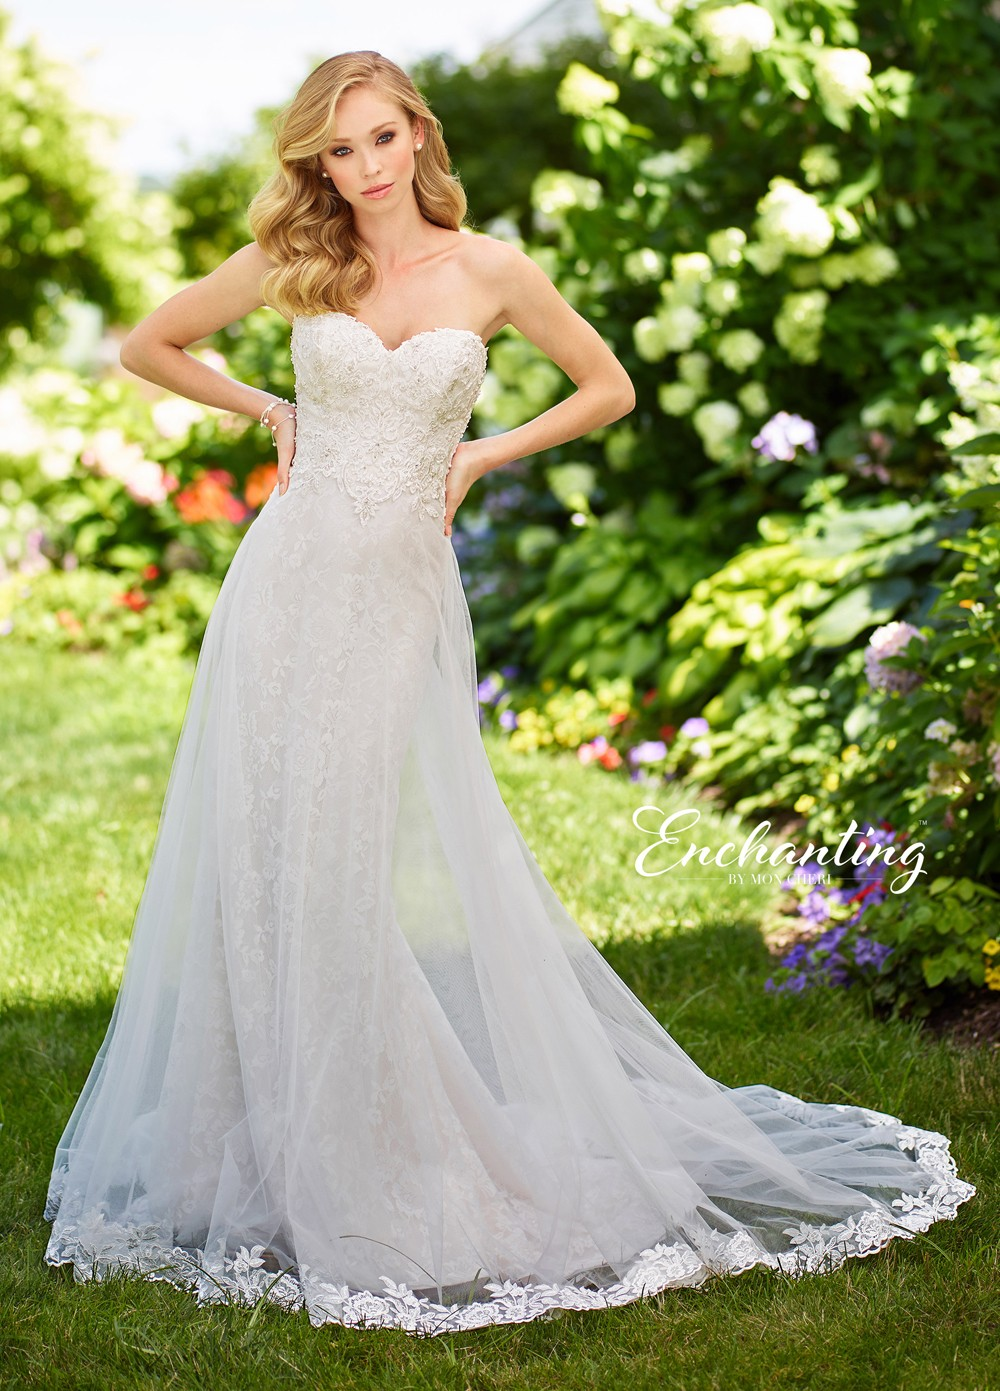 Strapless Sweetheart Neckline With Lace Accents